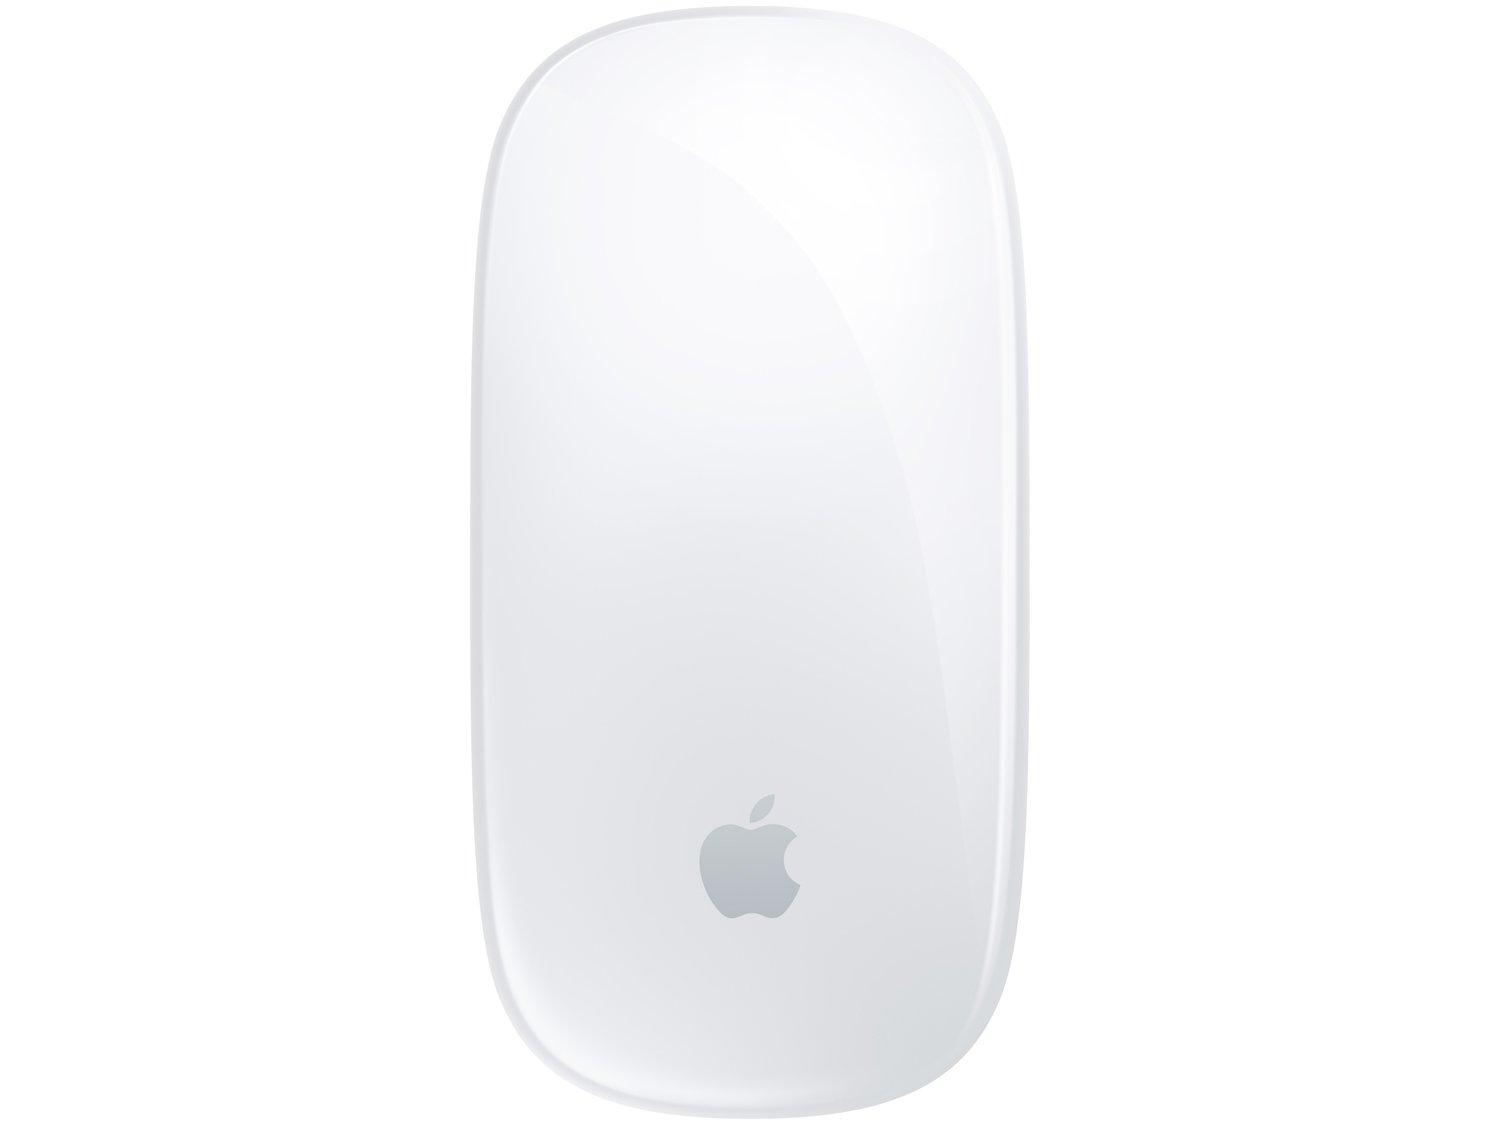 Foto 3 - Mouse Sem Fio Apple - Magic Mouse 2